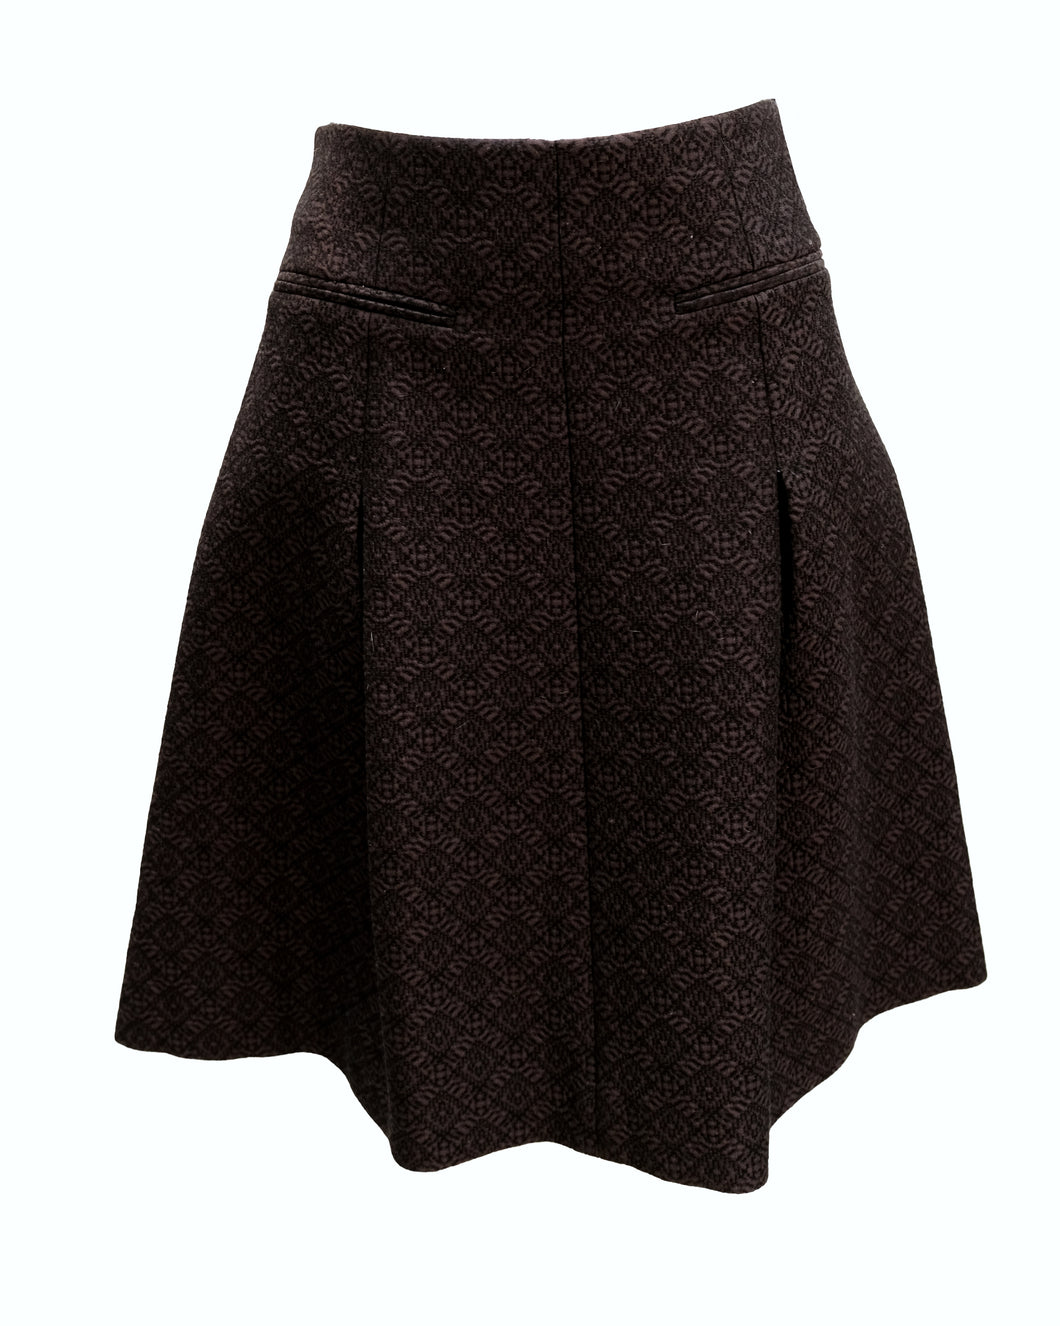 Celine Pleated A line Skirt in Black Jacquard, UK12